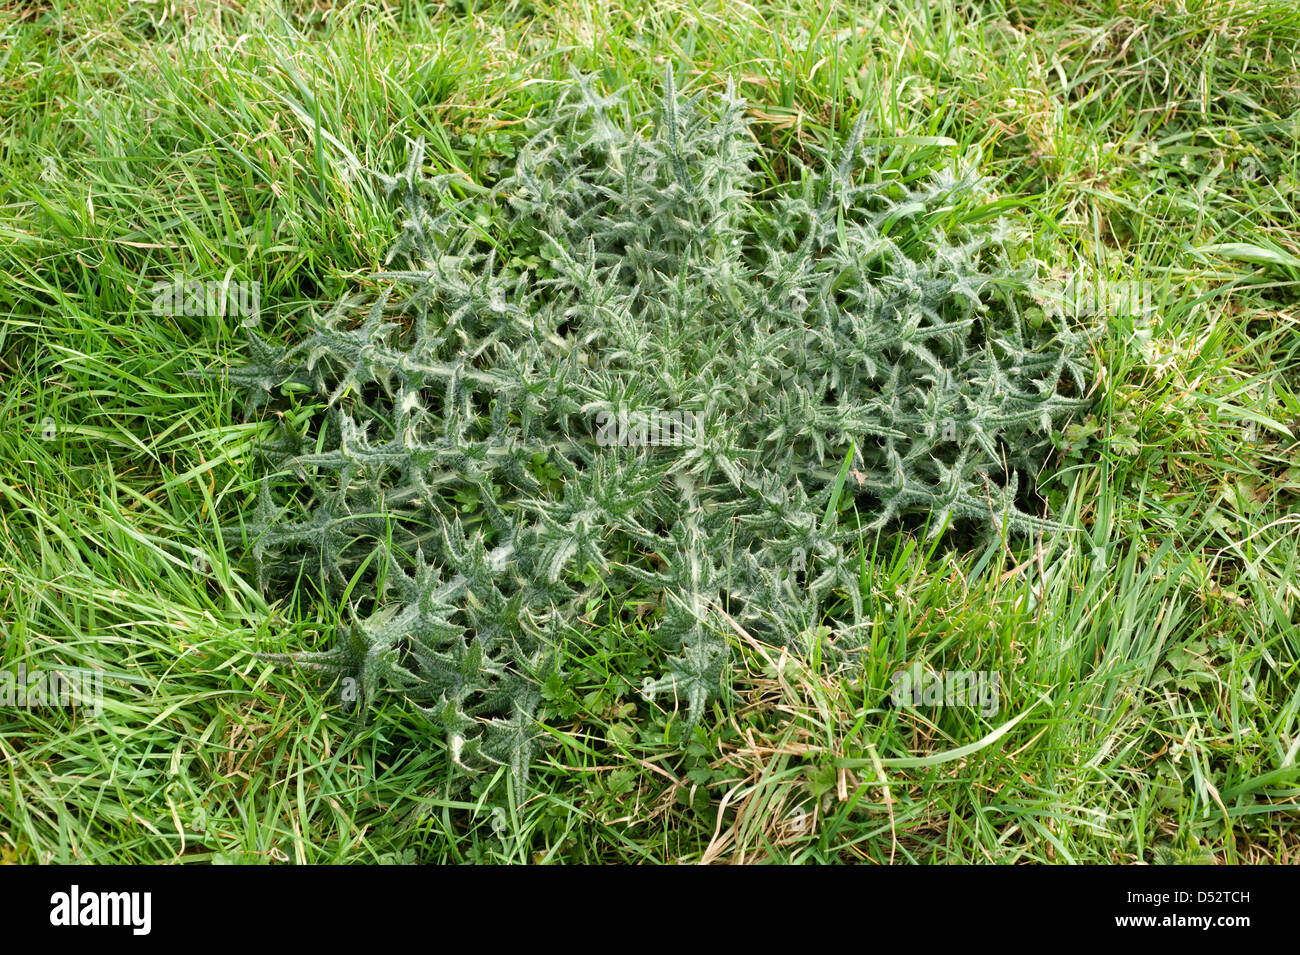 Strong spear thistle, Cirsium vulgare, leaf rosette in grass pastureland - Stock Image